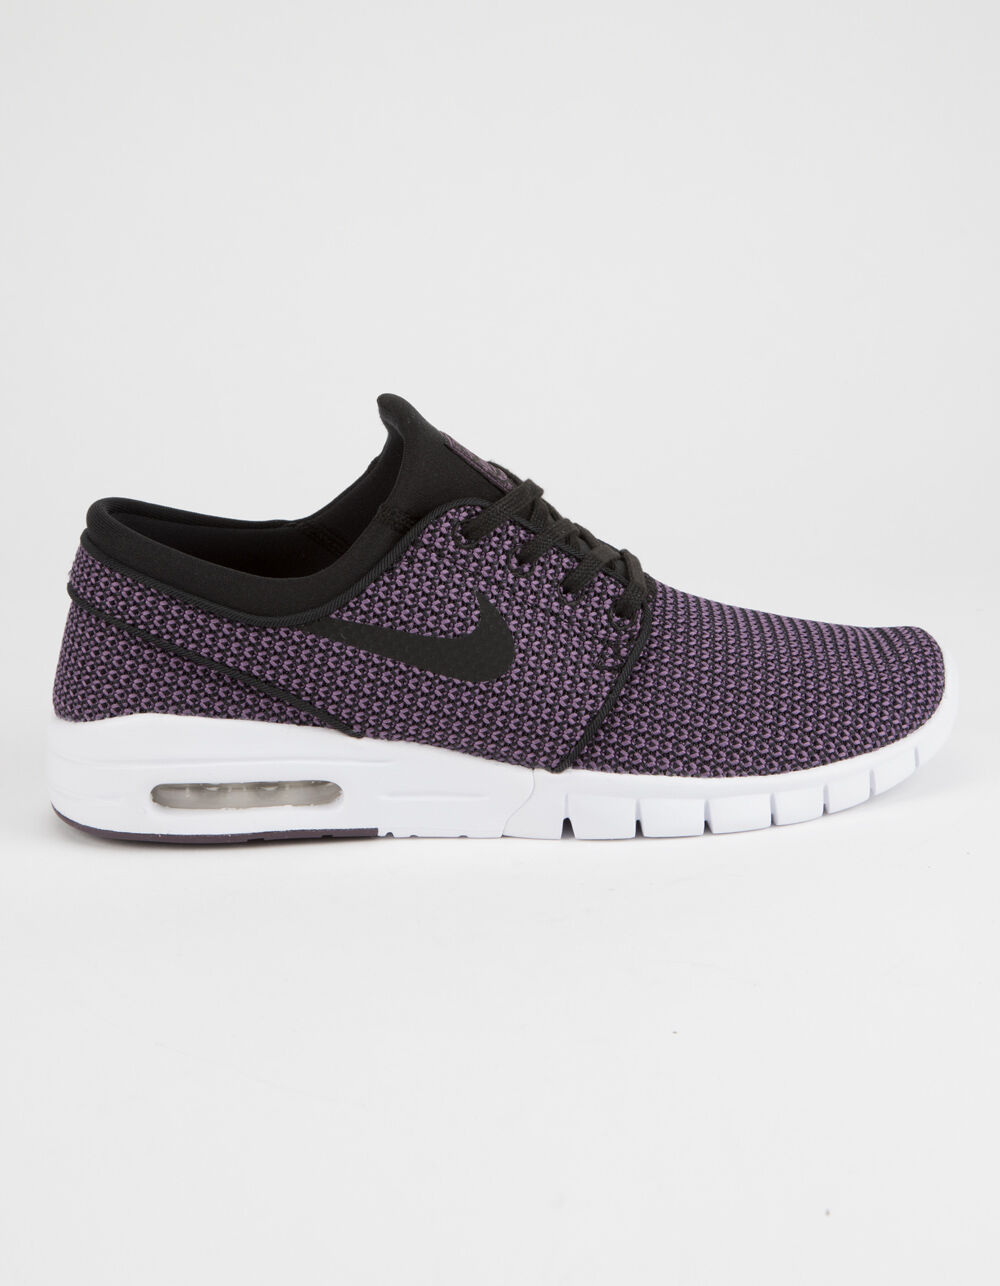 NIKE SB STEFAN JANOSKI MAX BLACK & PRO PURPLE SHOES